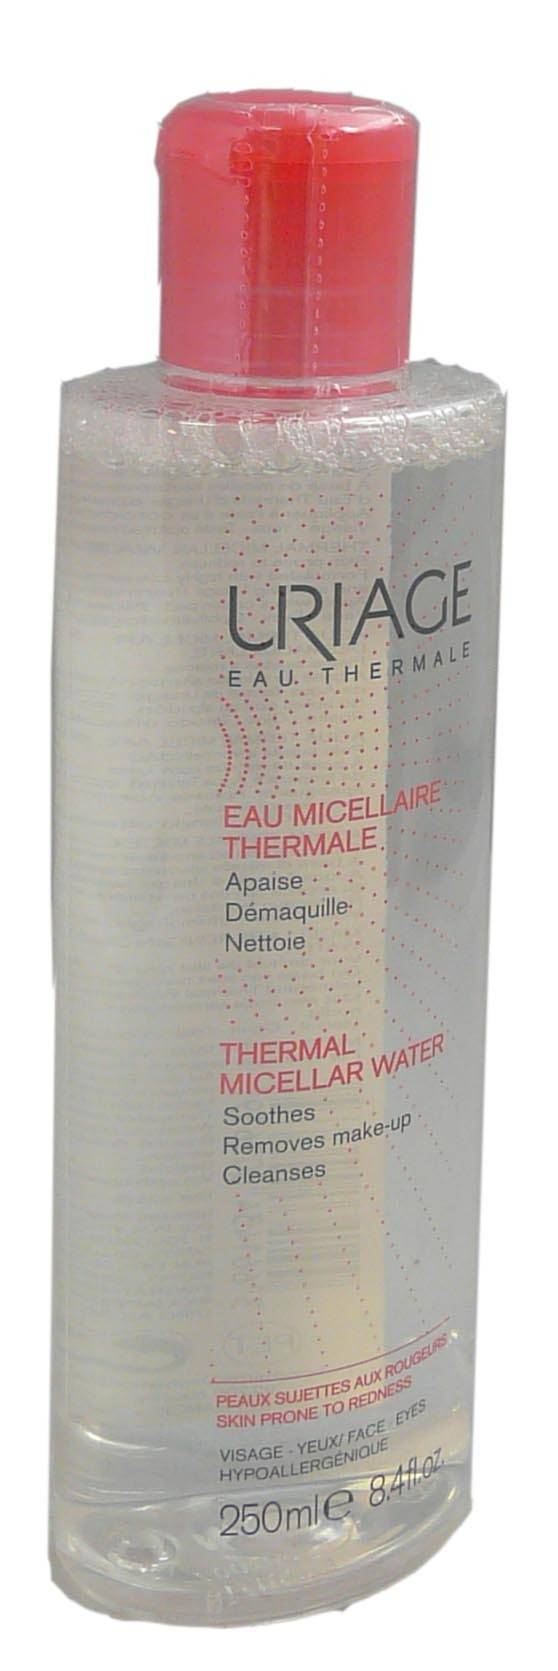 Uriage eau micellaire thermale peau rougeur 250ml